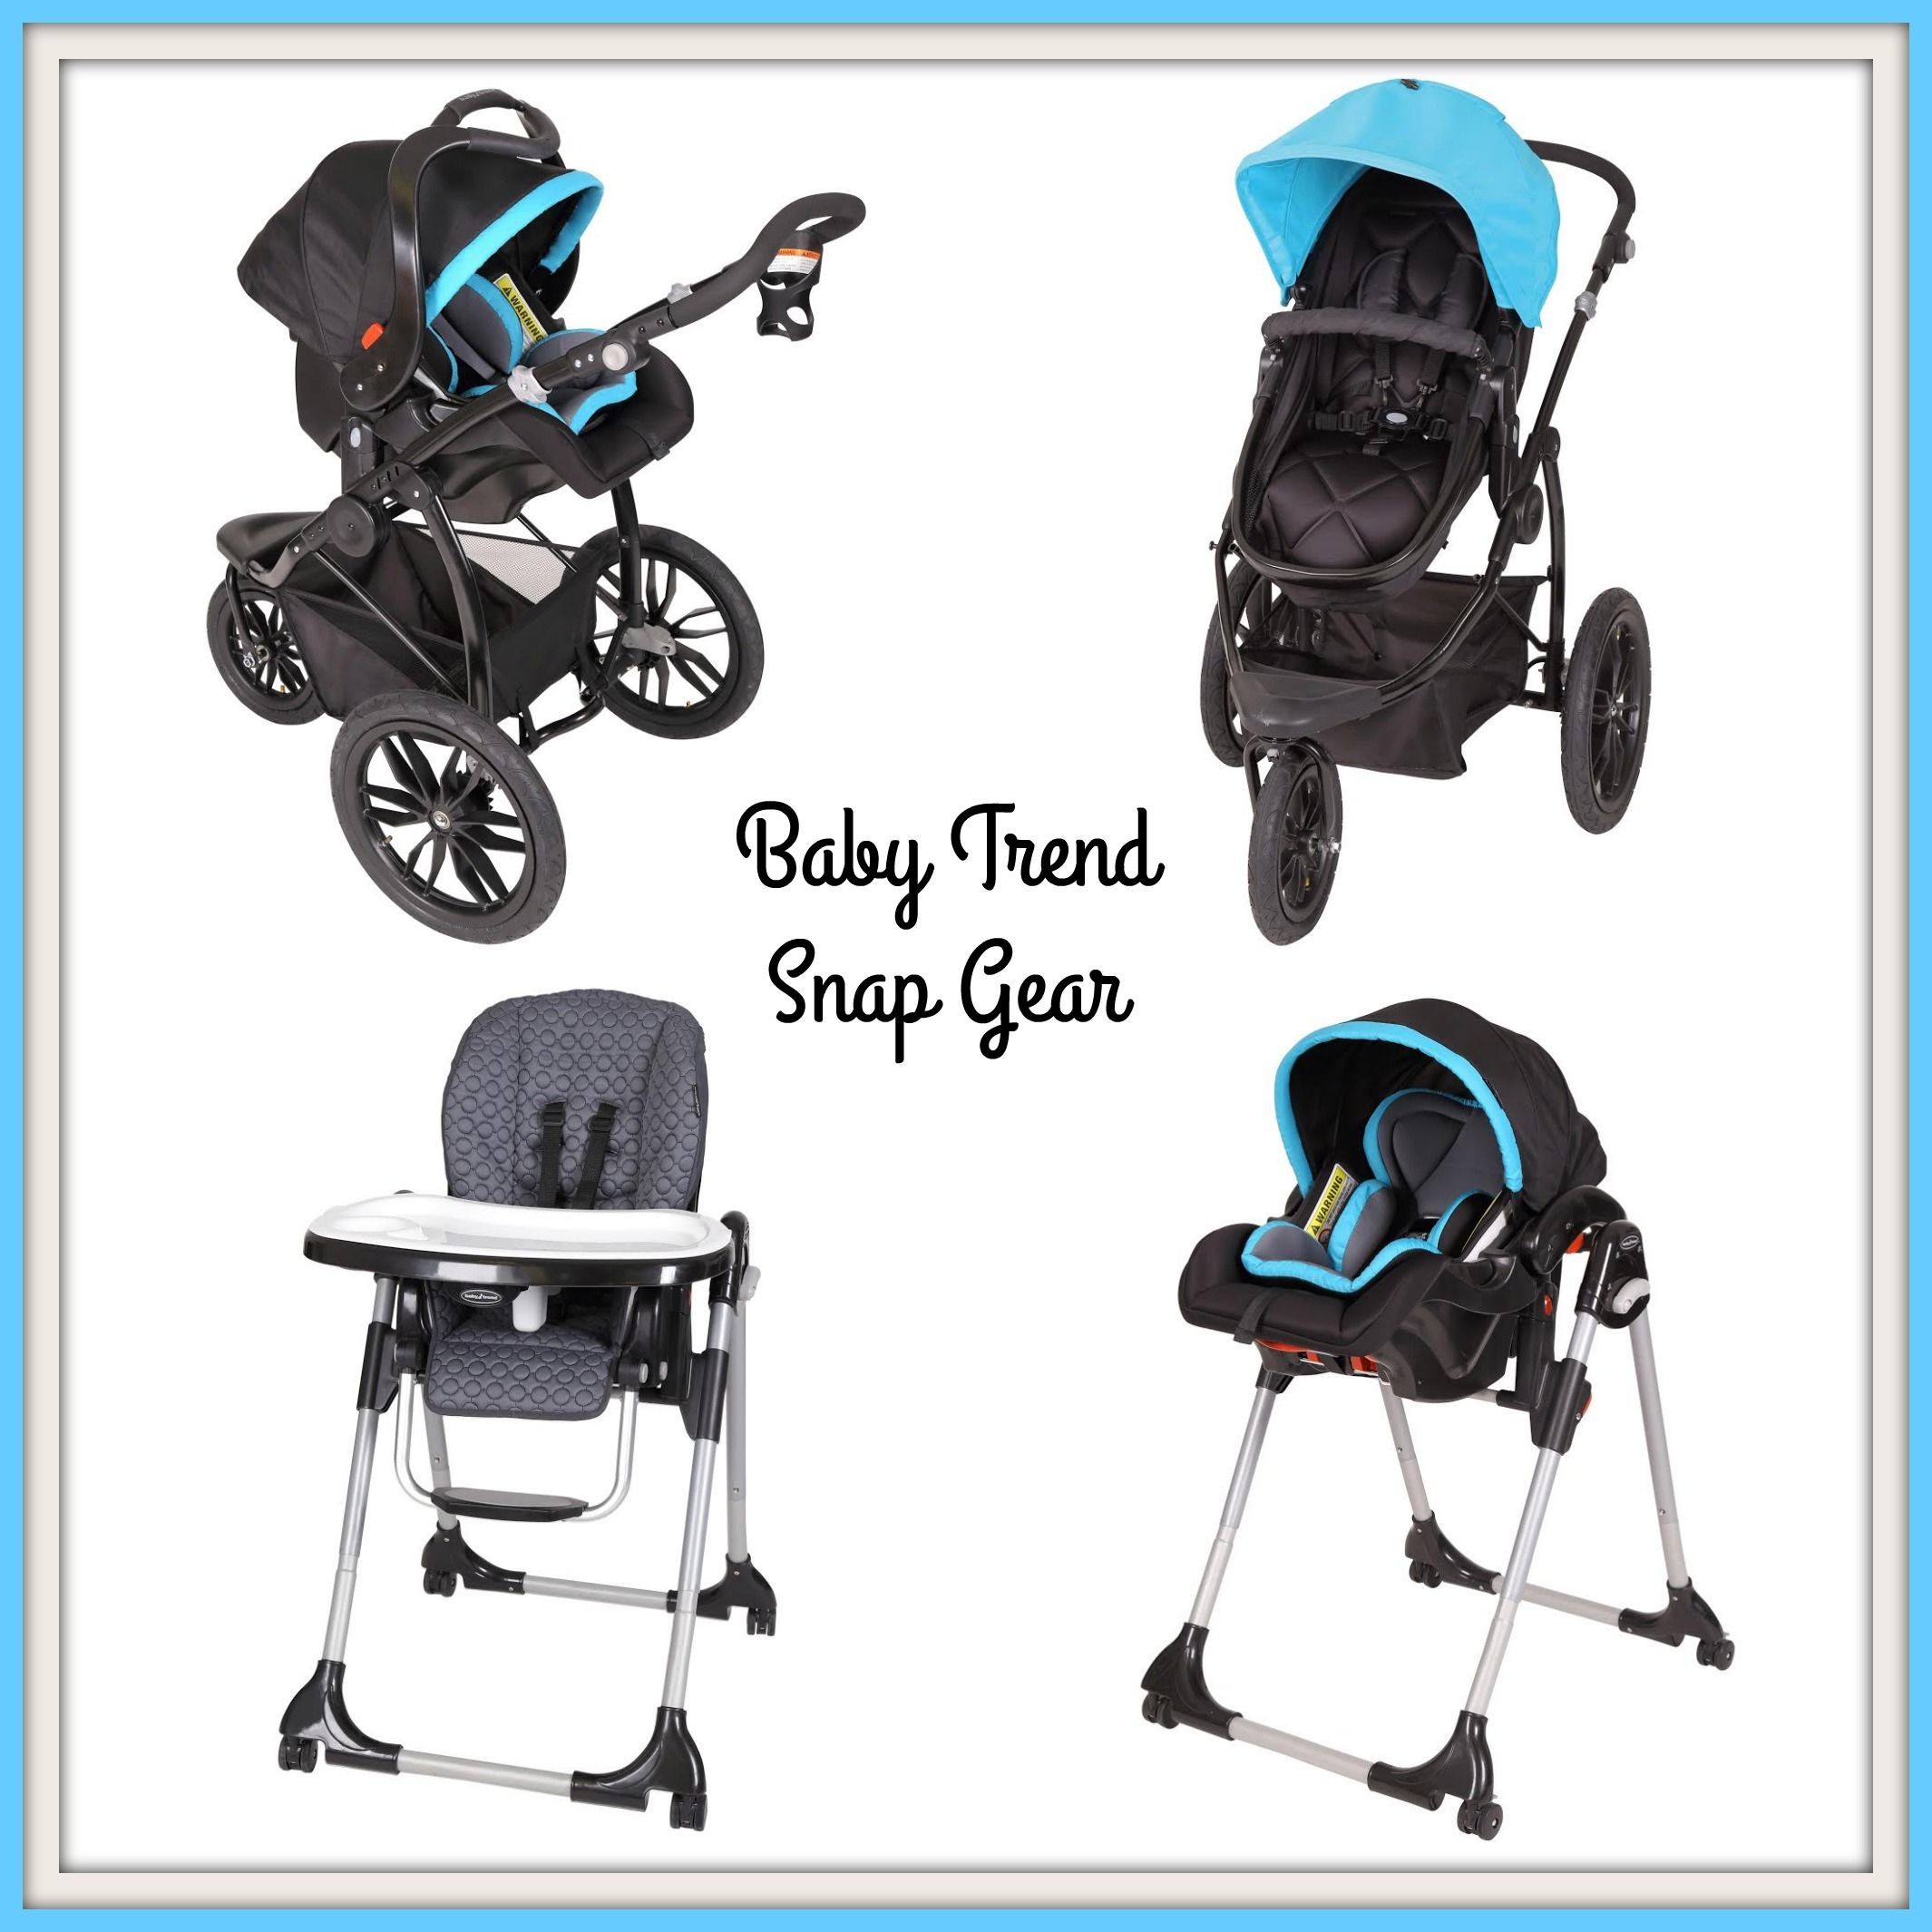 Baby Trend Snap Gear Infant System Review (With images